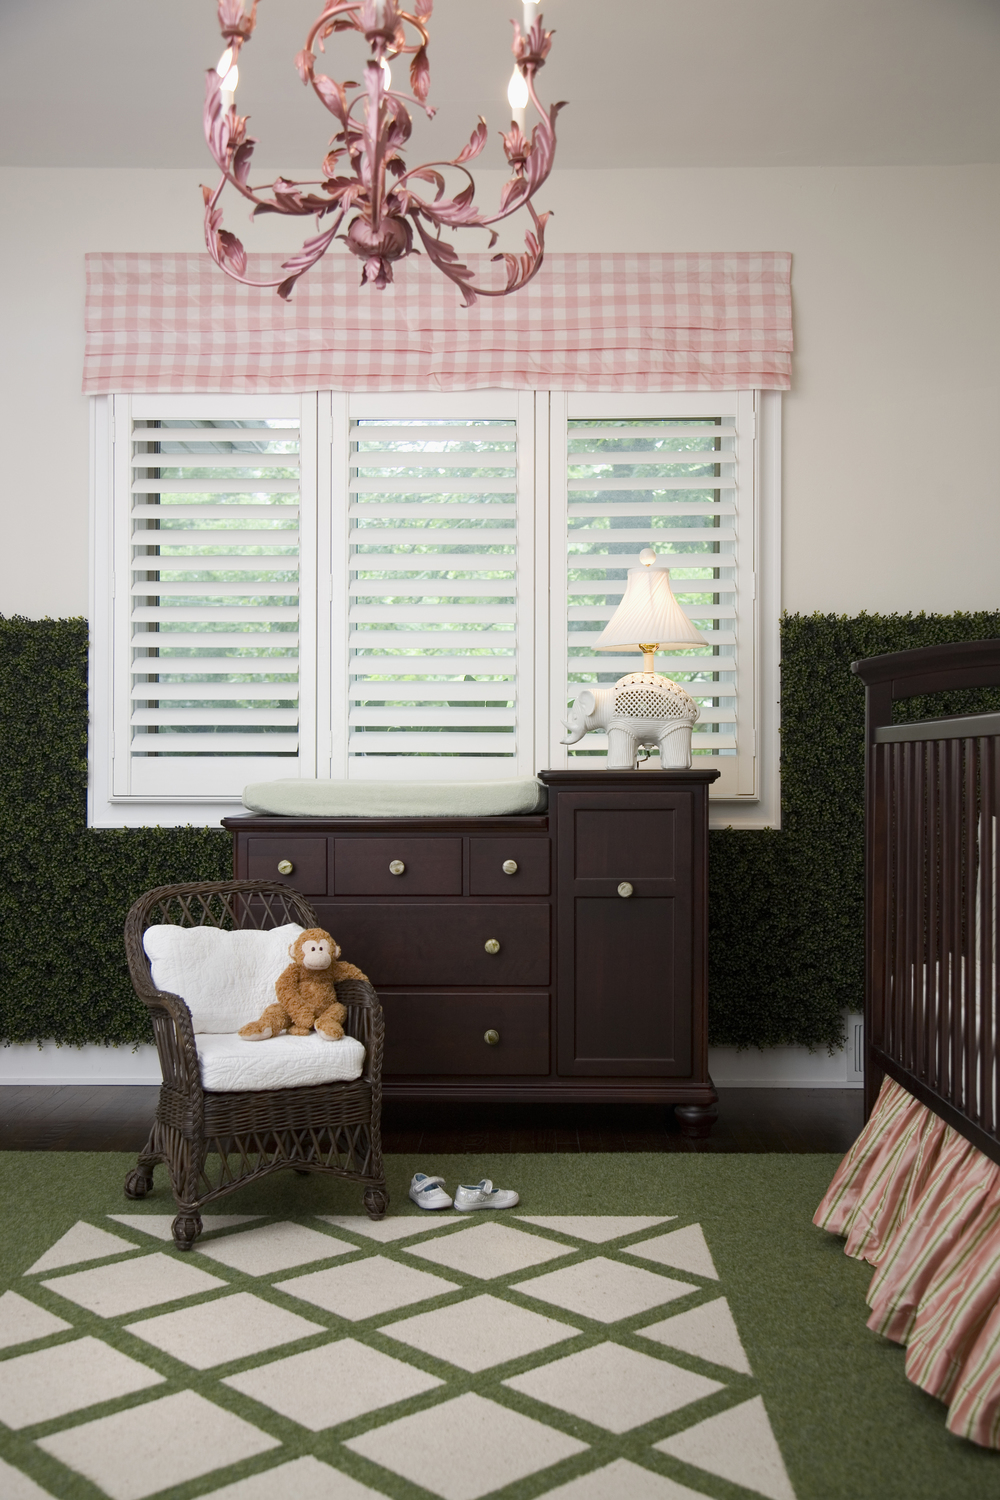 wildwood nursery | awh photography